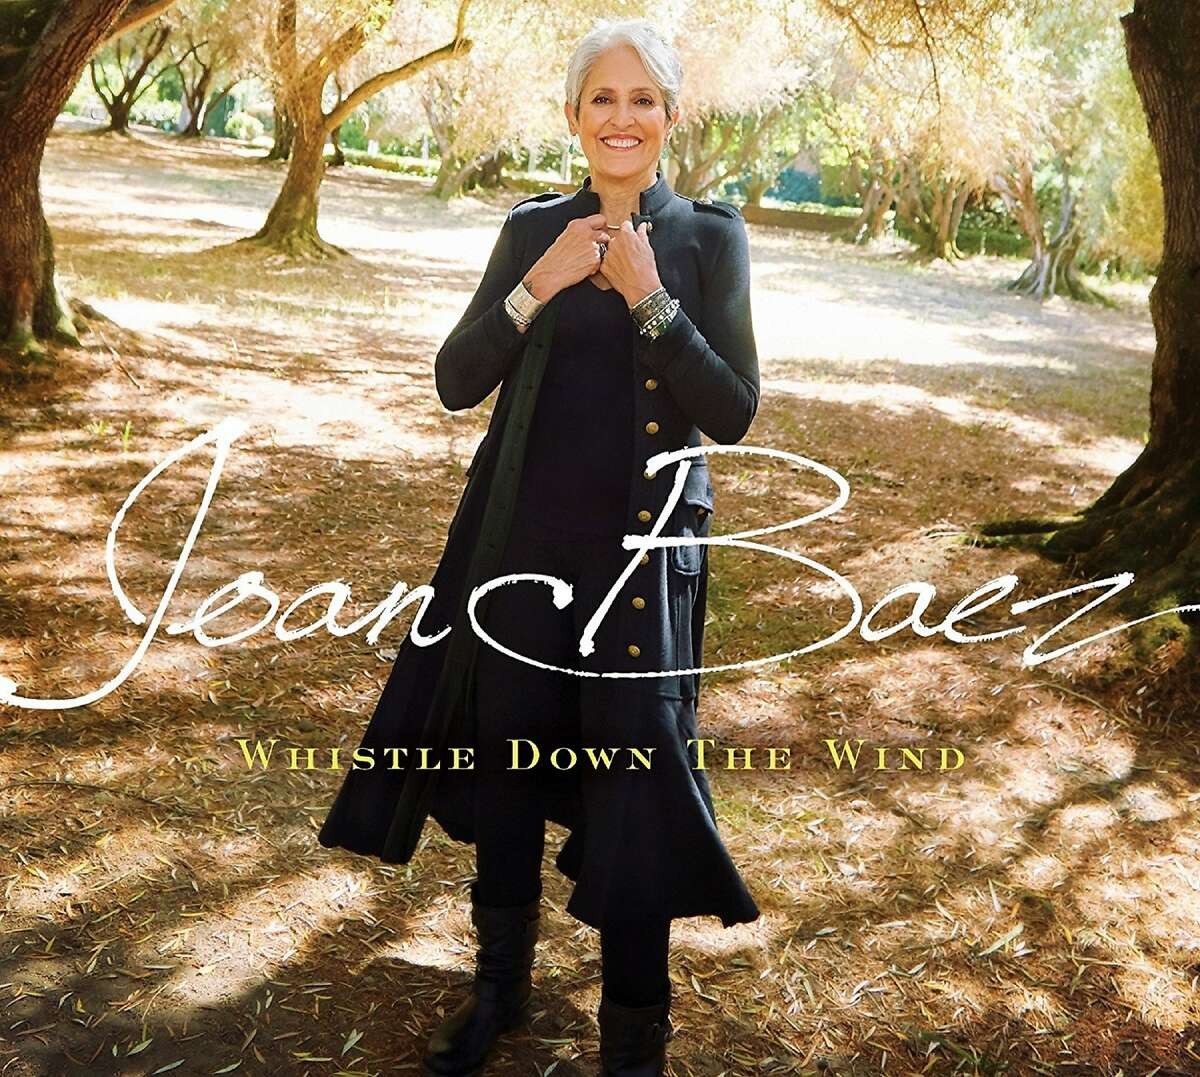 Joan Baez's final tour follows the release of 'Whistle Down the Wind'